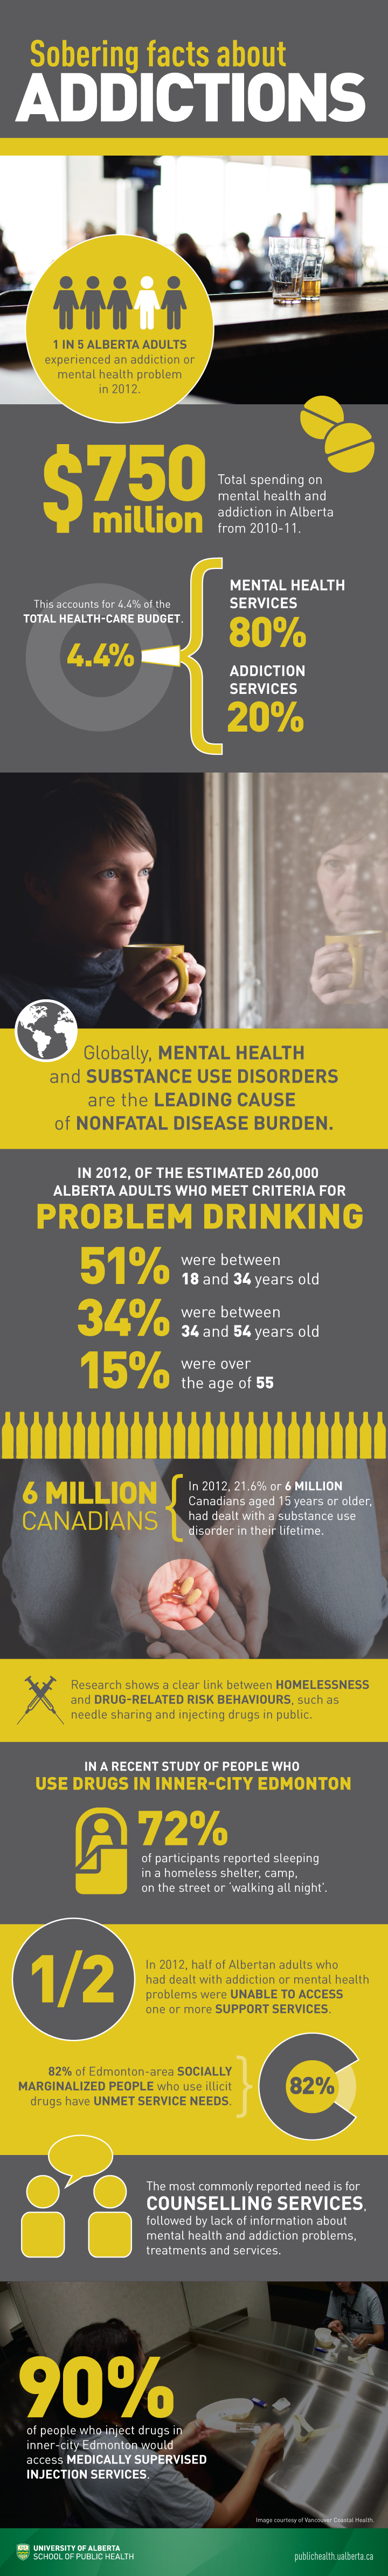 Sobering facts about addictions